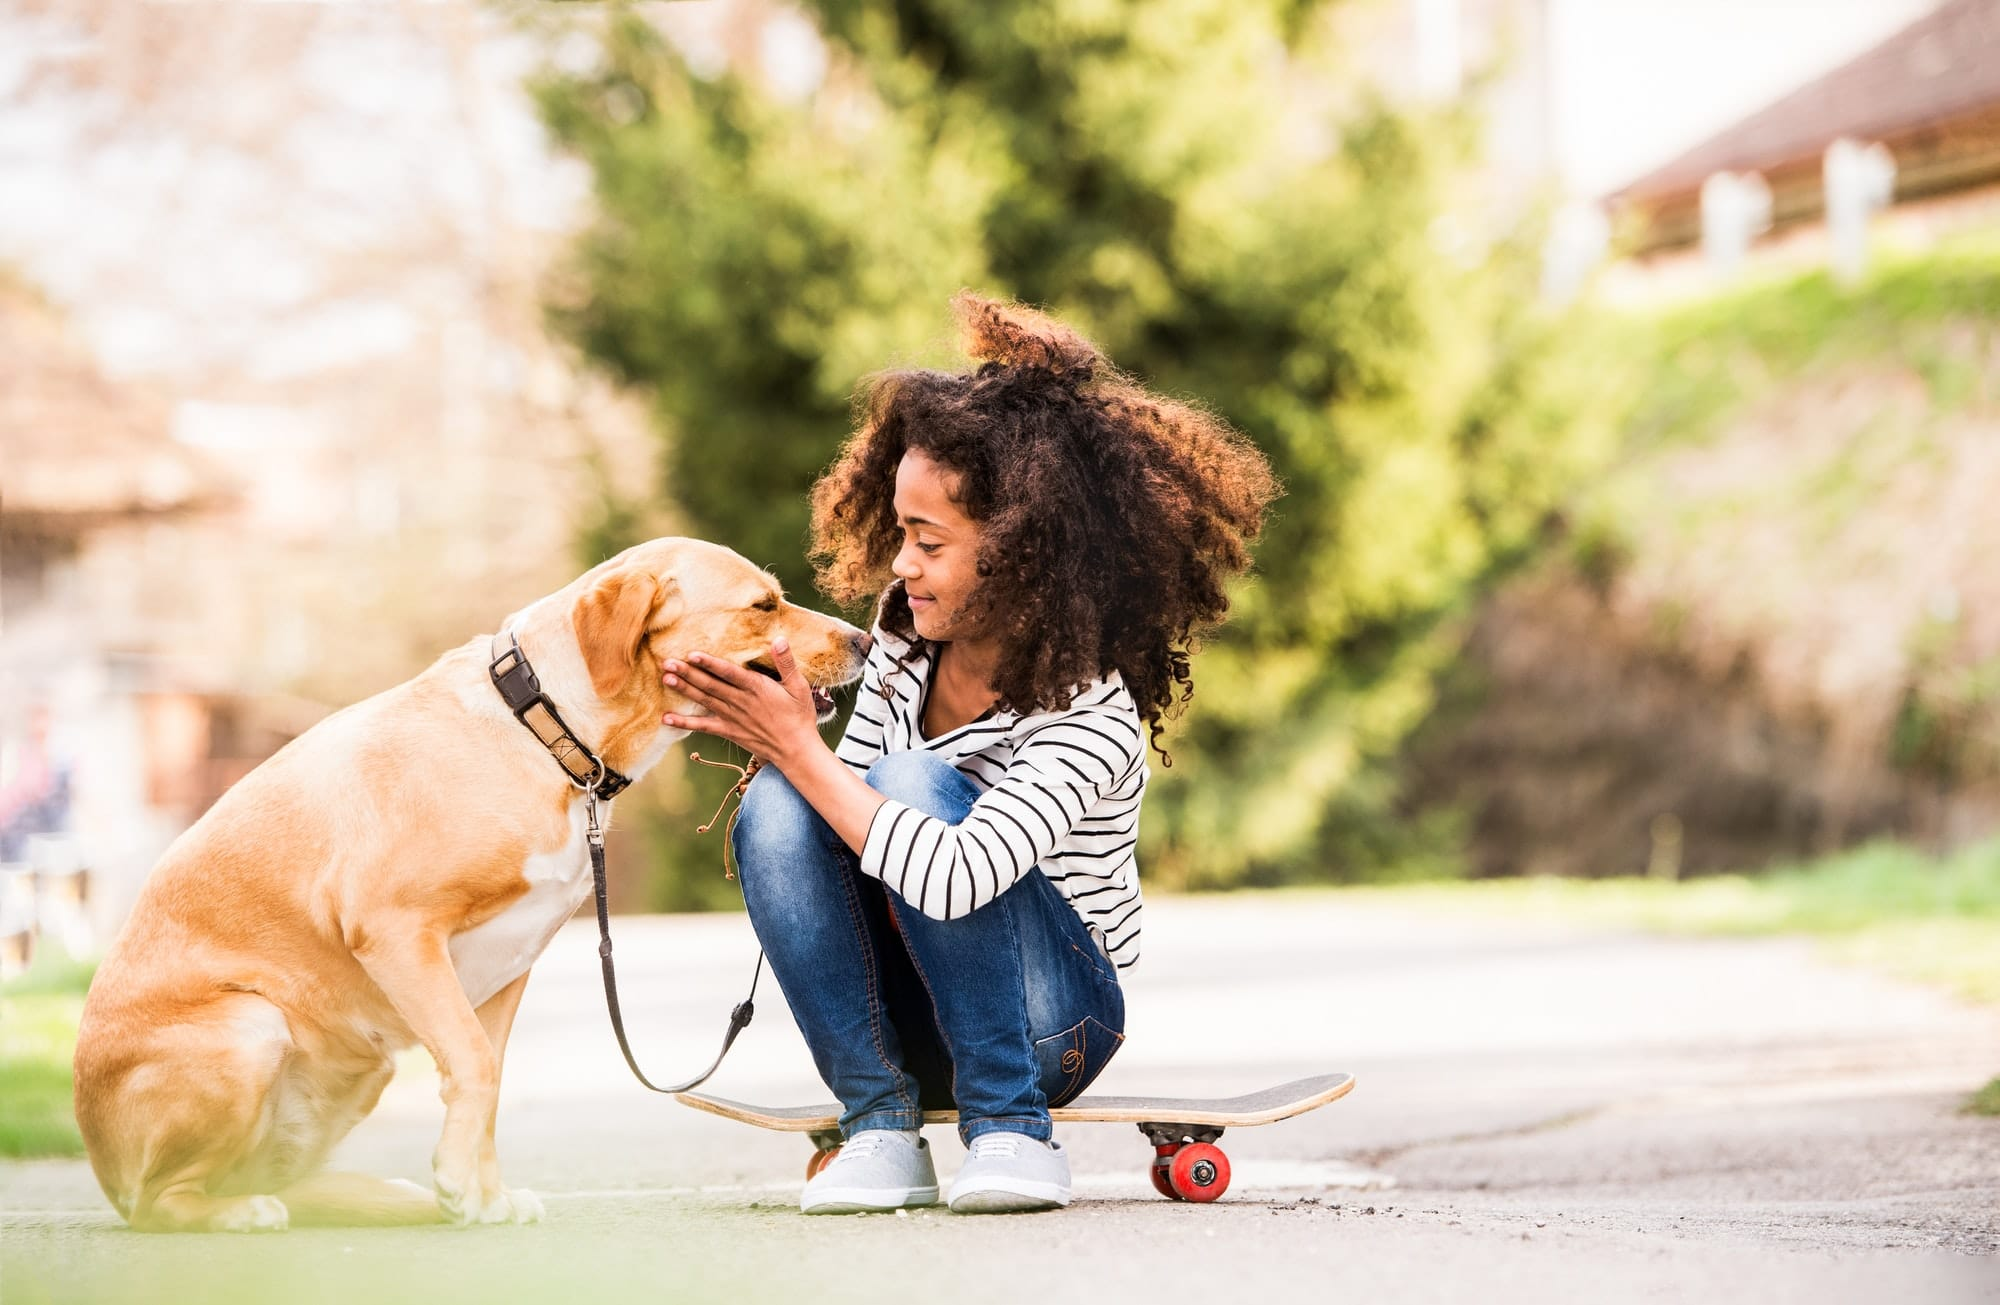 African american girl outdoors on skateboard with her dog.